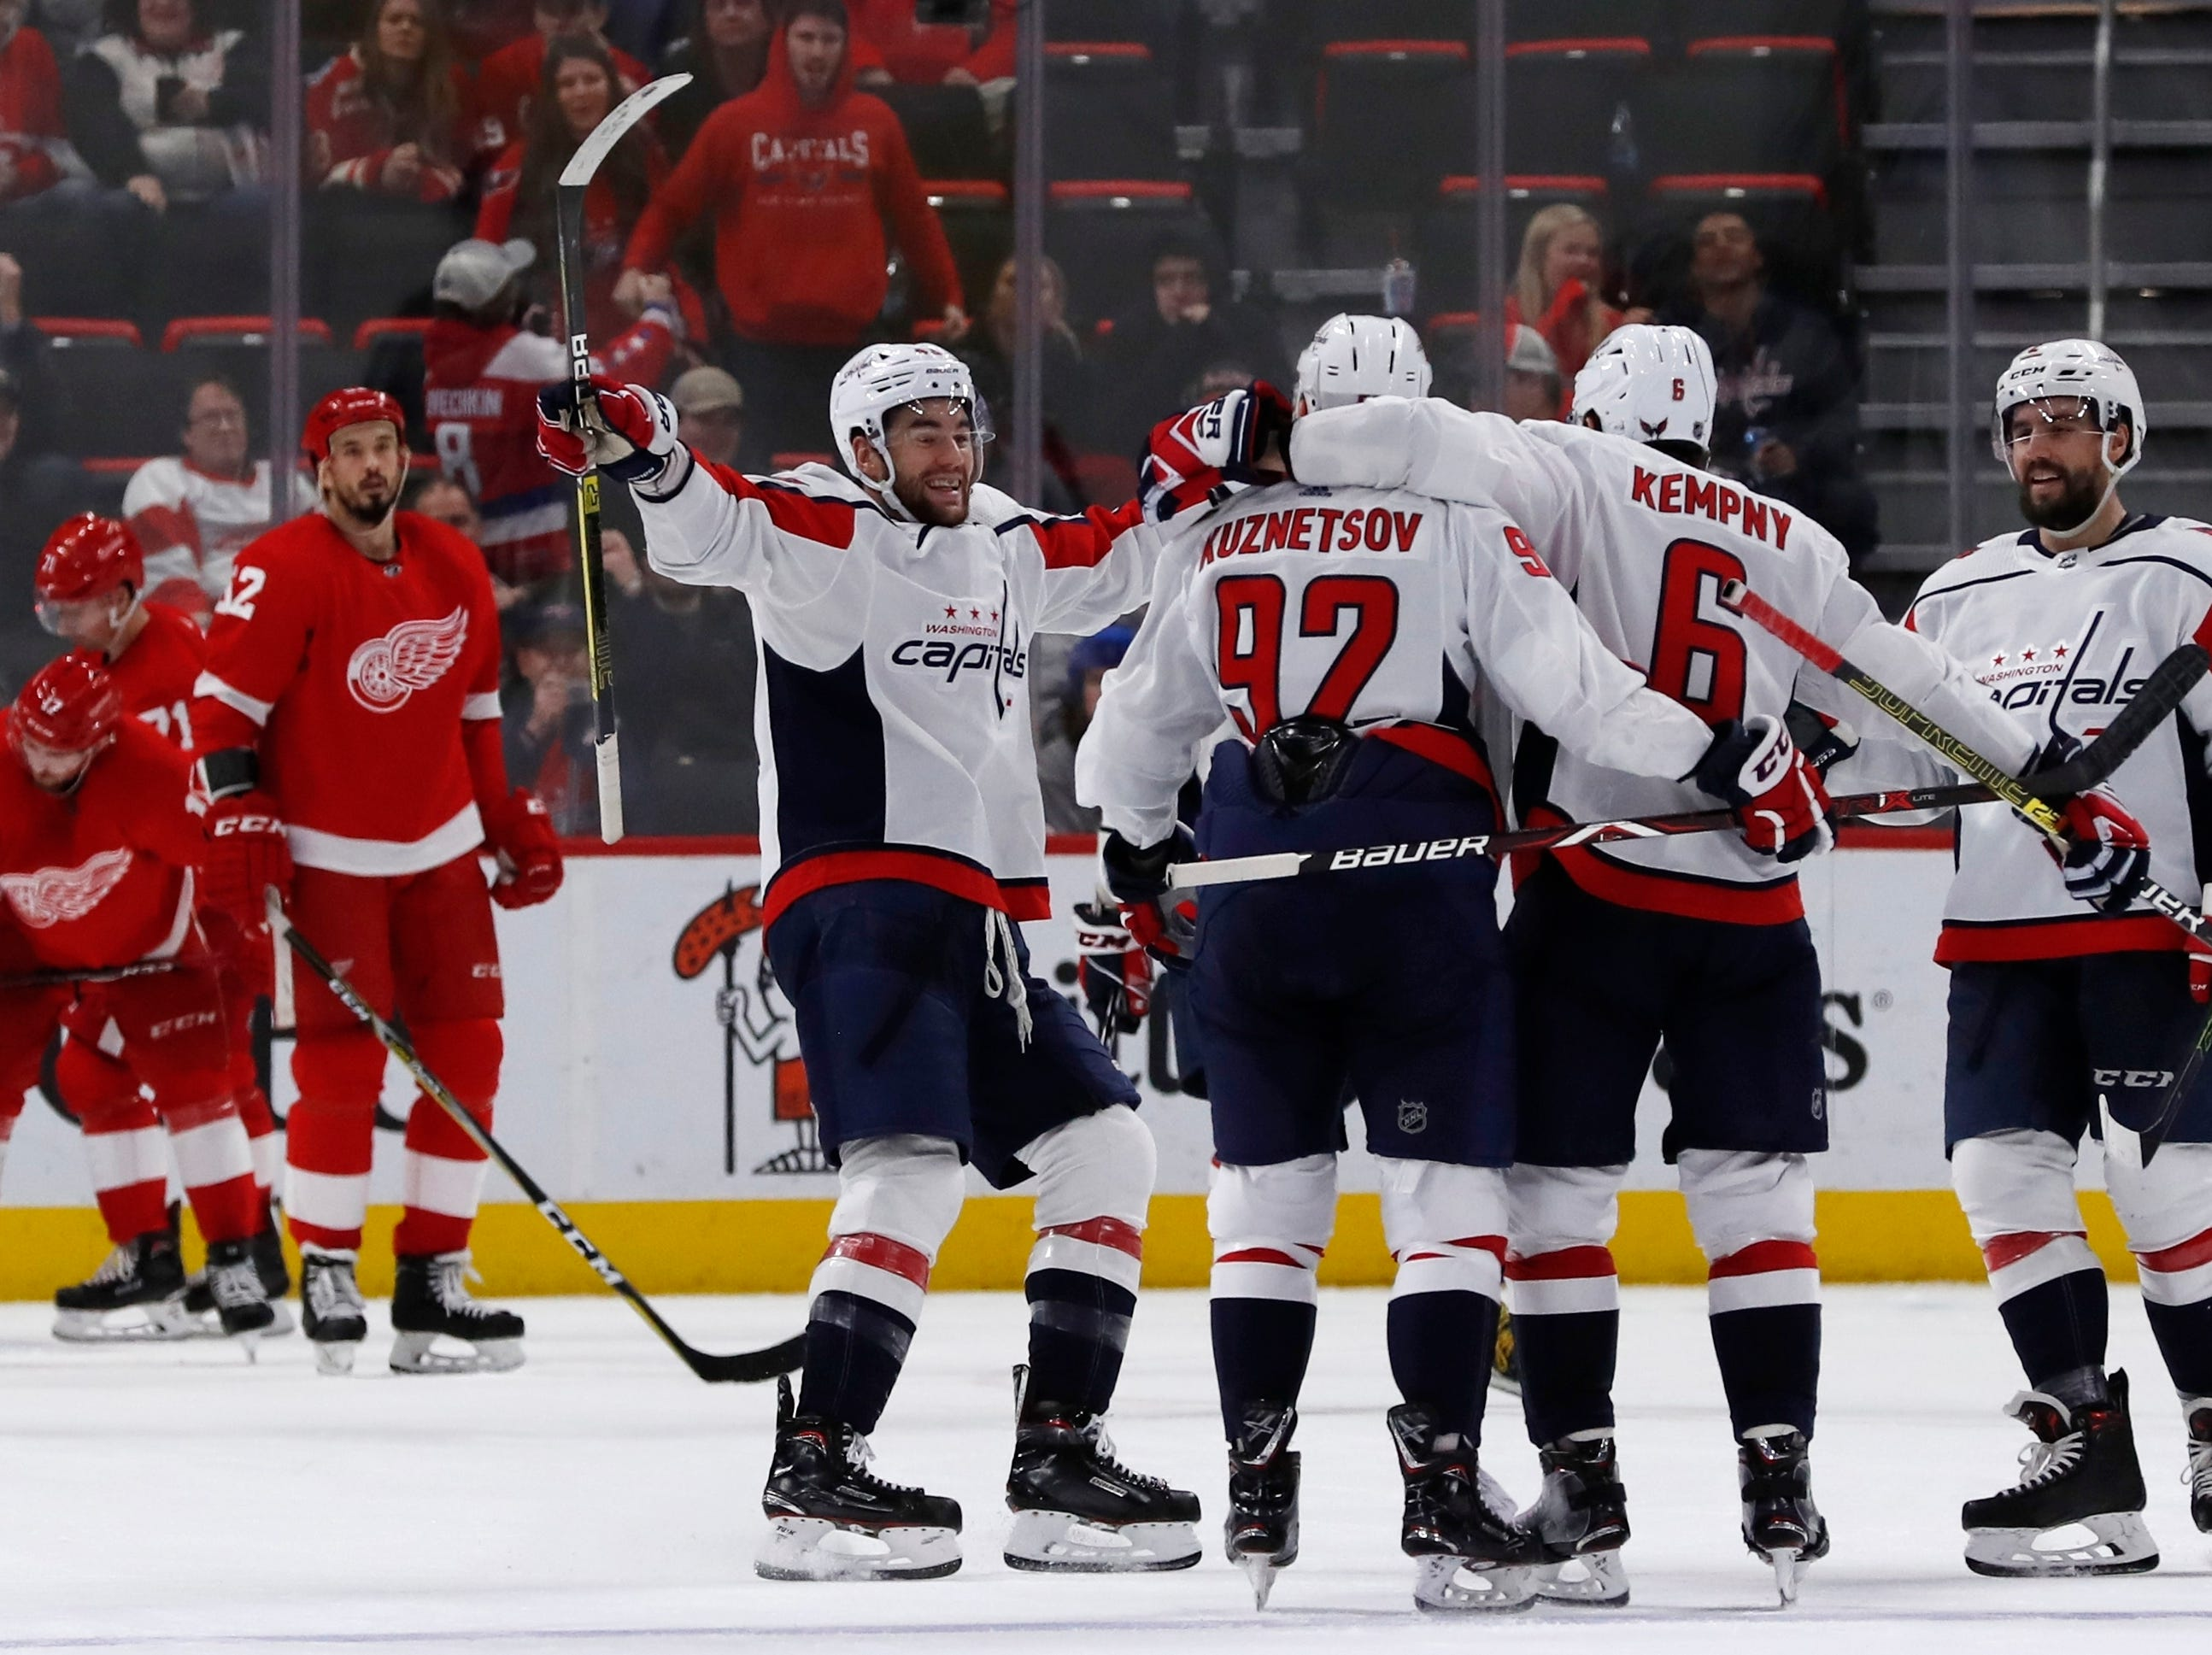 The Washington Capitals celebrate their third goal during the third period of an NHL hockey game, Sunday, Jan. 6, 2019, in Detroit. Washington defeated Detroit 3-2.